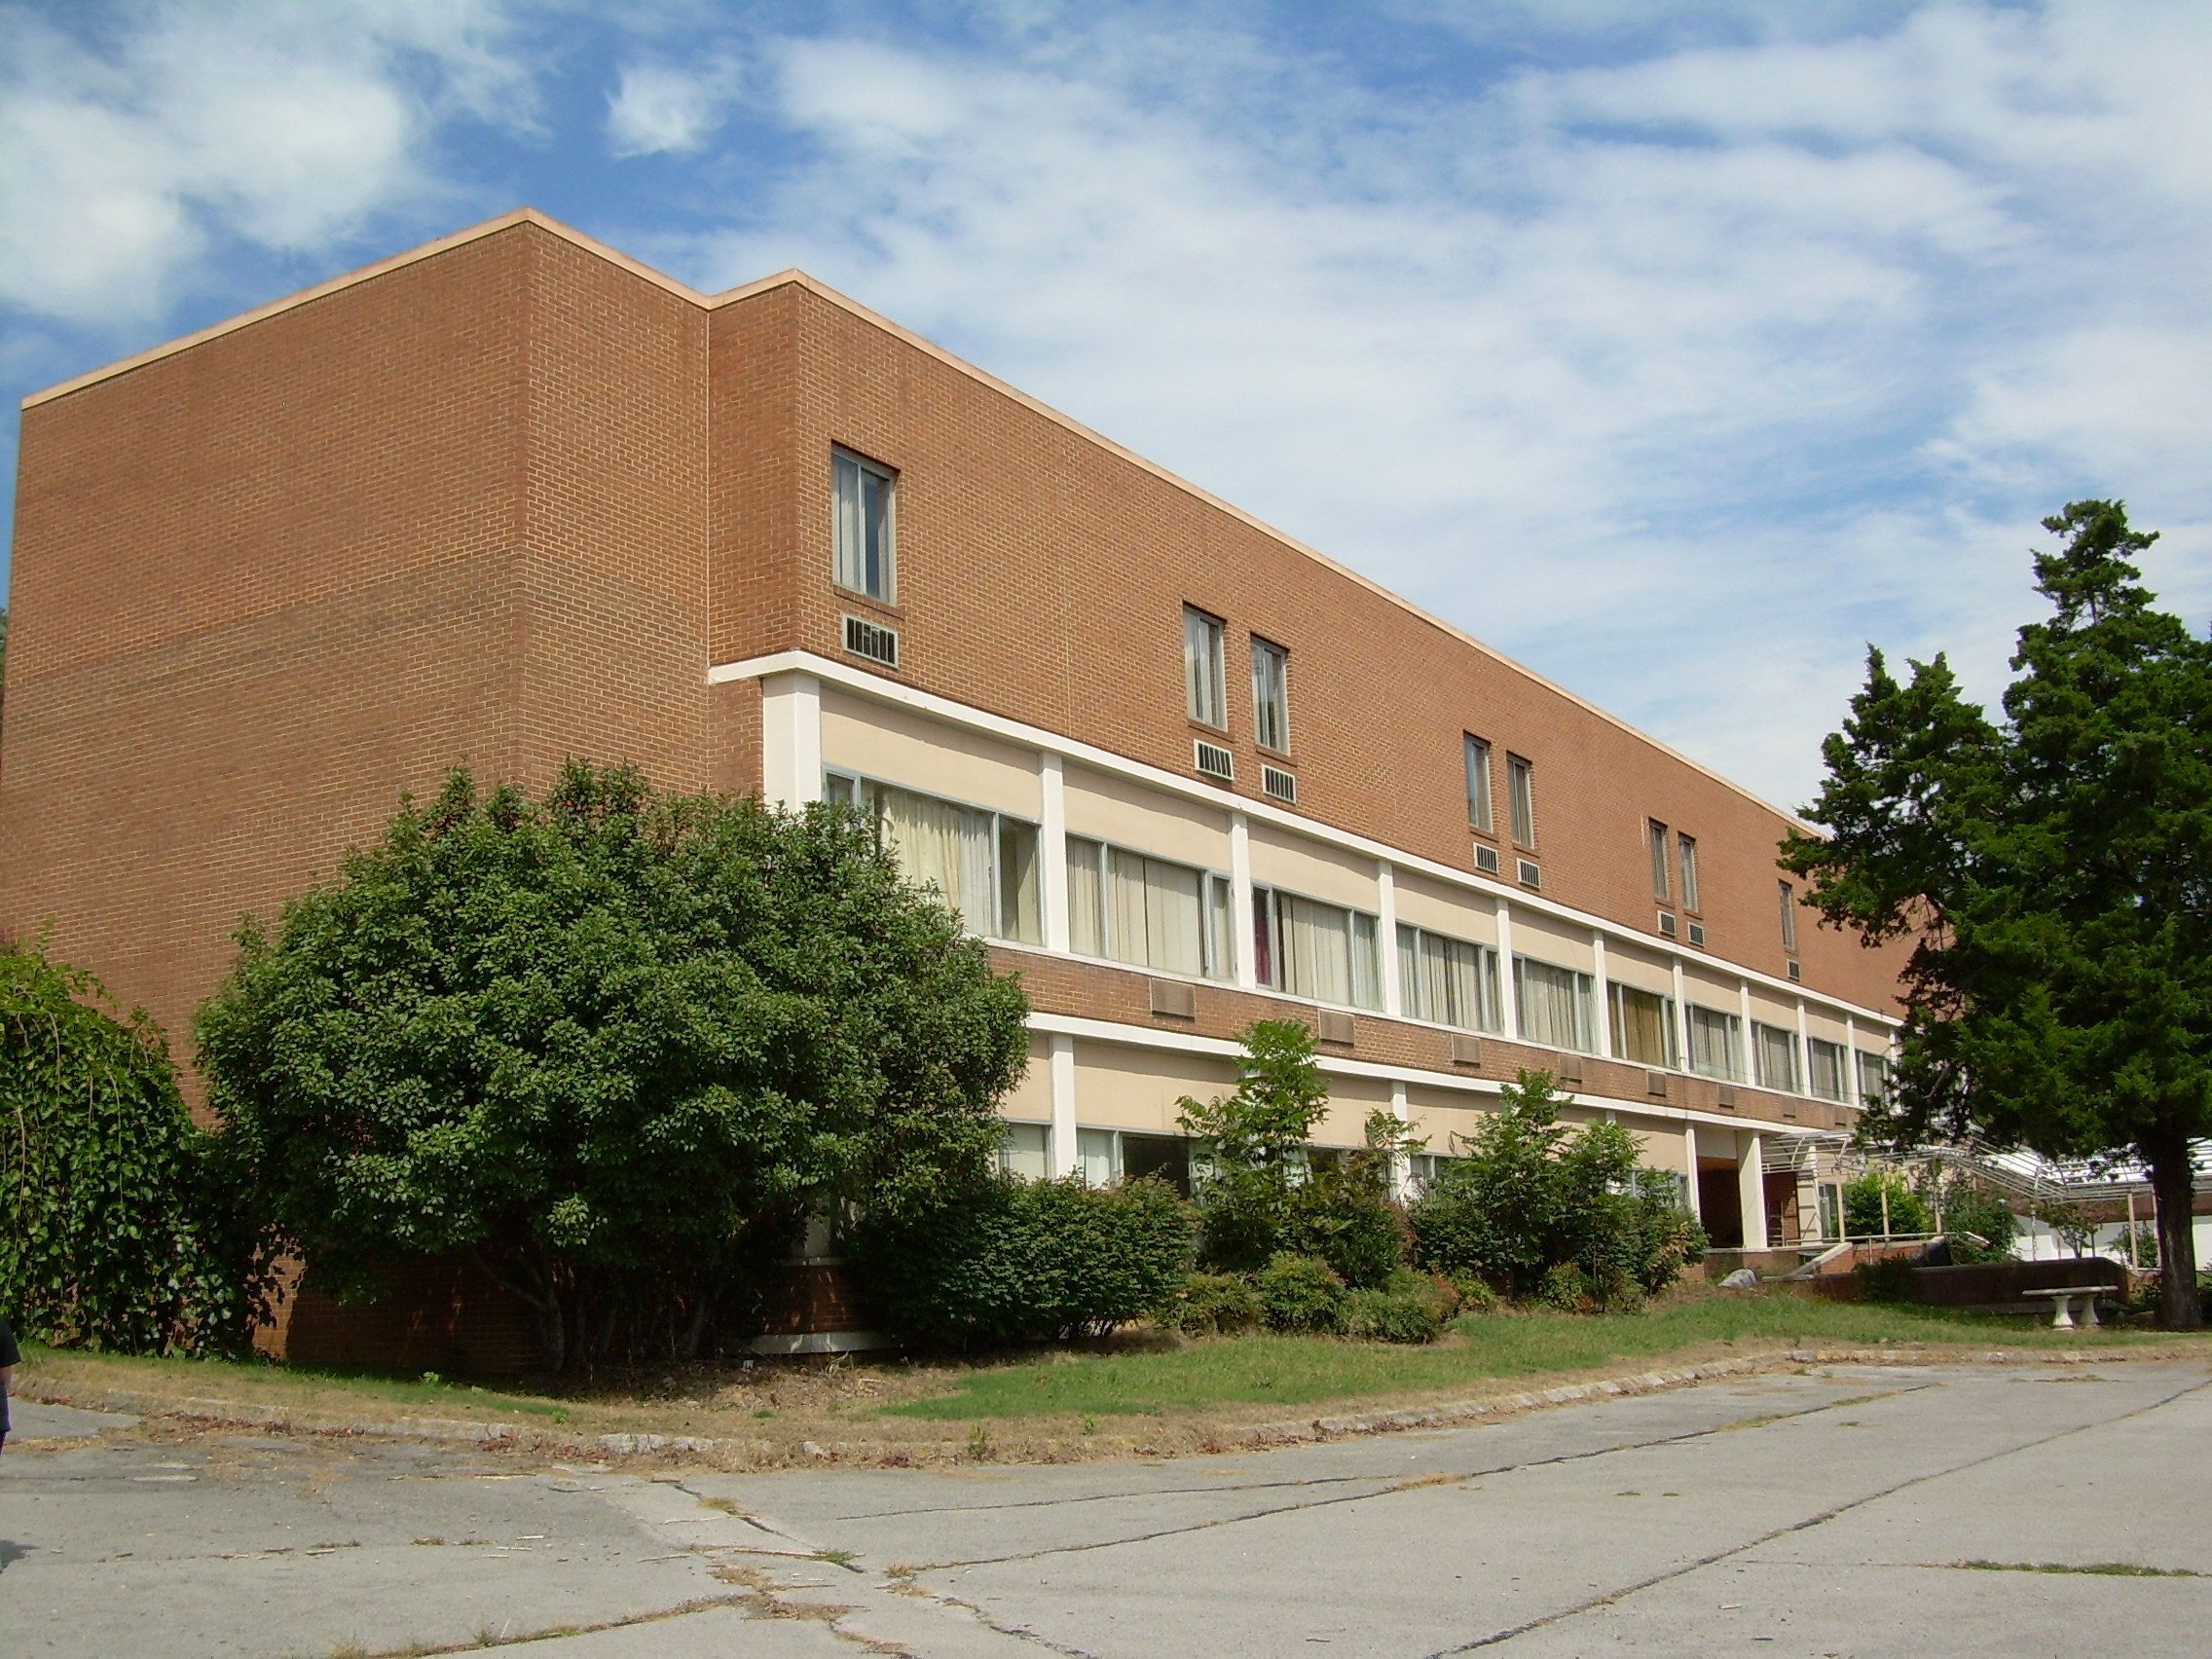 tnold-south-pittsburg-hospital-haunted-journeys